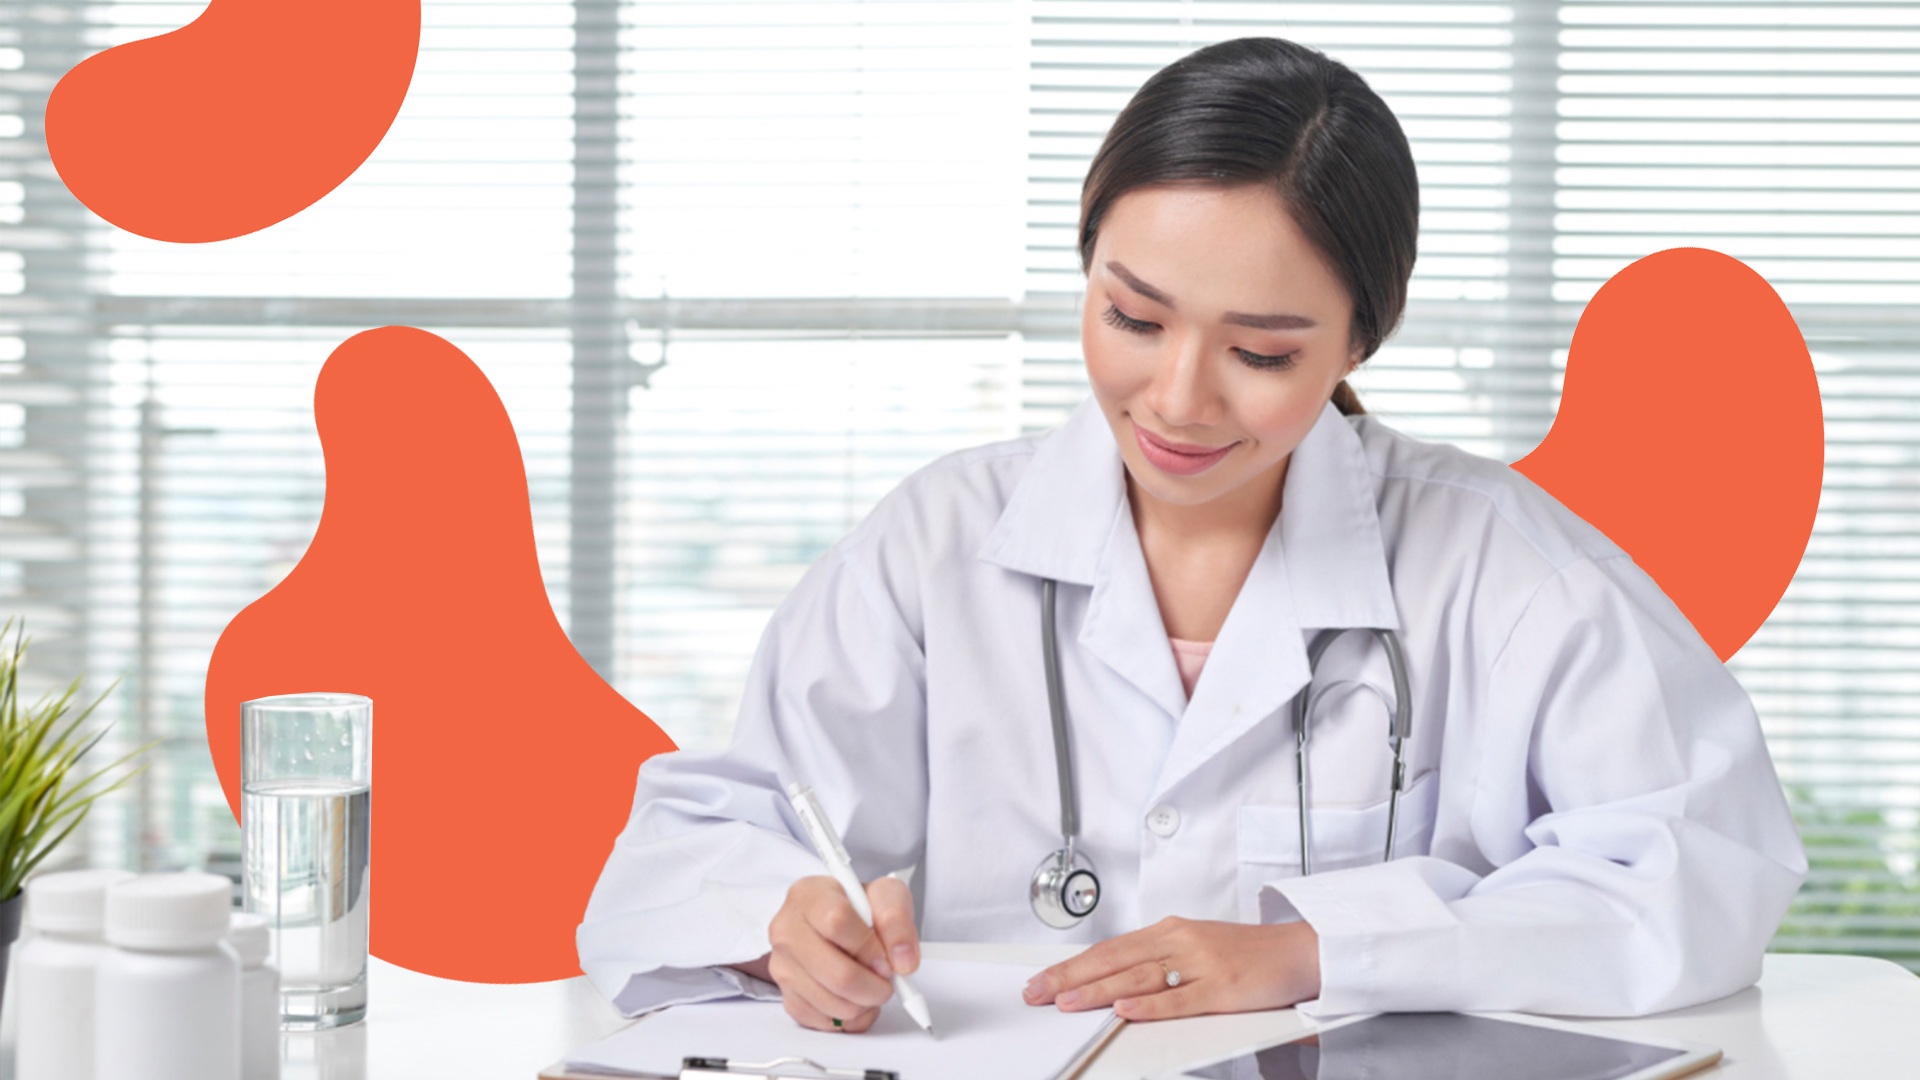 Telemedicine Walk-in Clinics vs. Urgent Care Clinics: Know What to Expect